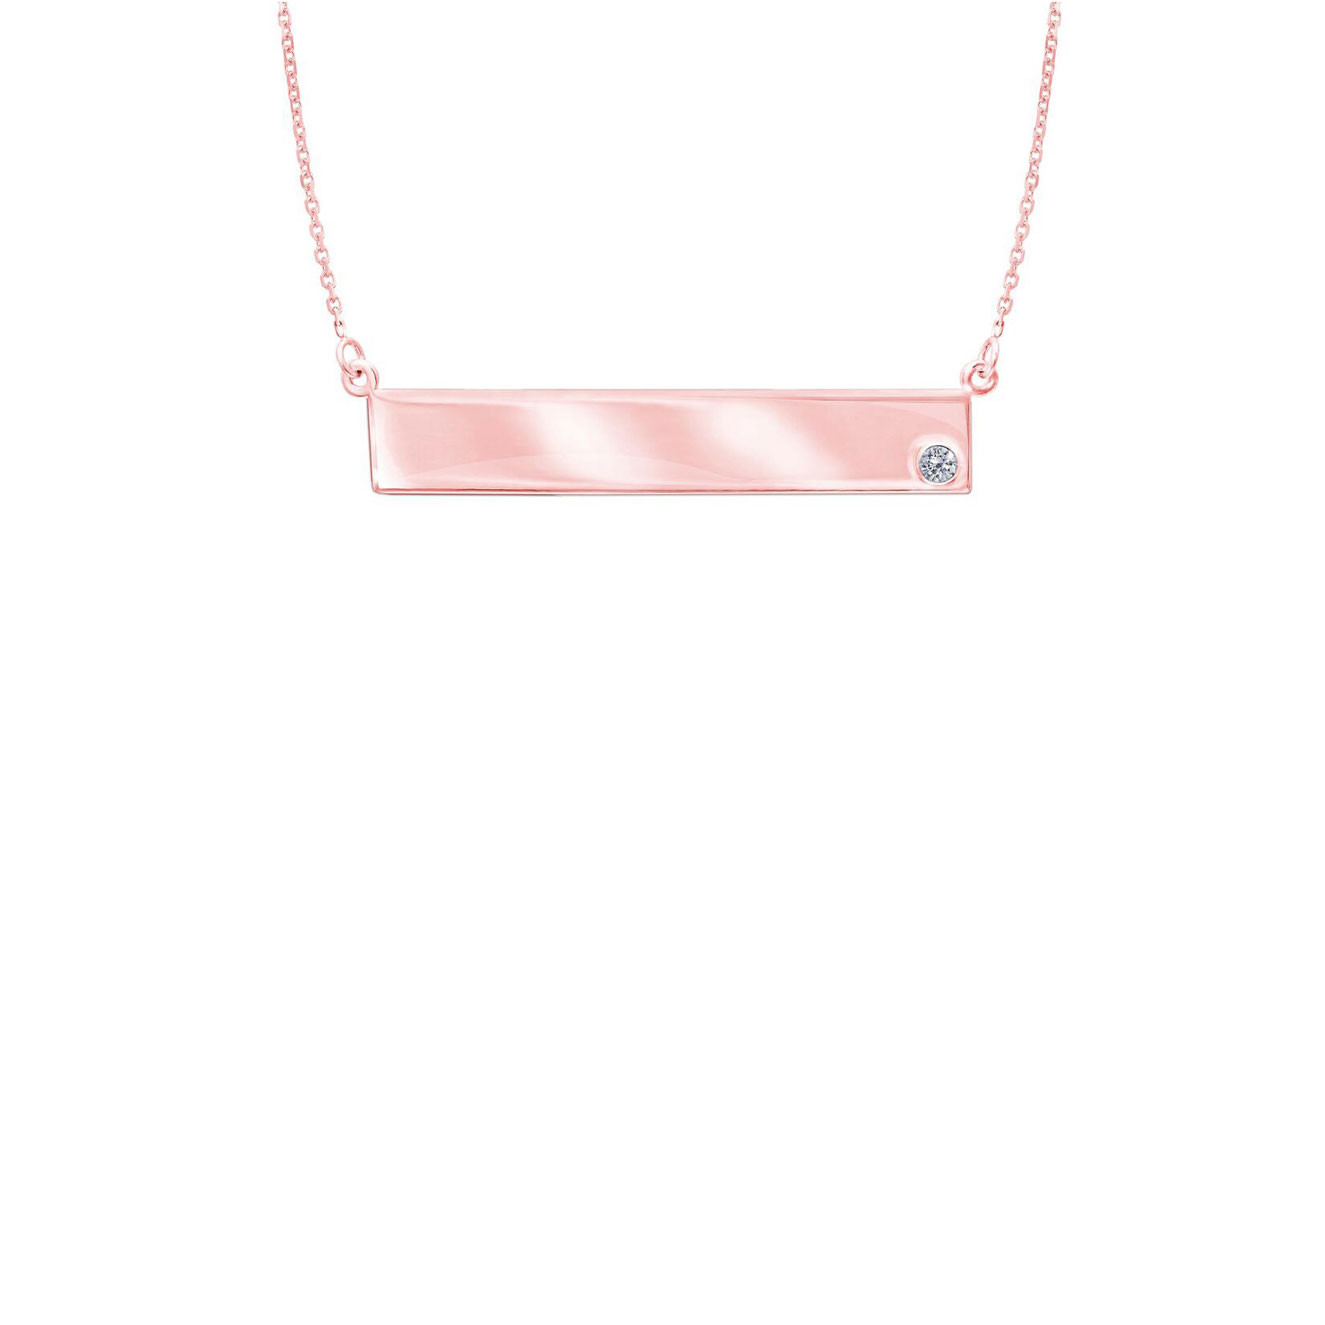 Rose gold nameplate necklace with solitaire diamond 14k rose gold nameplate necklace with diamond aloadofball Image collections